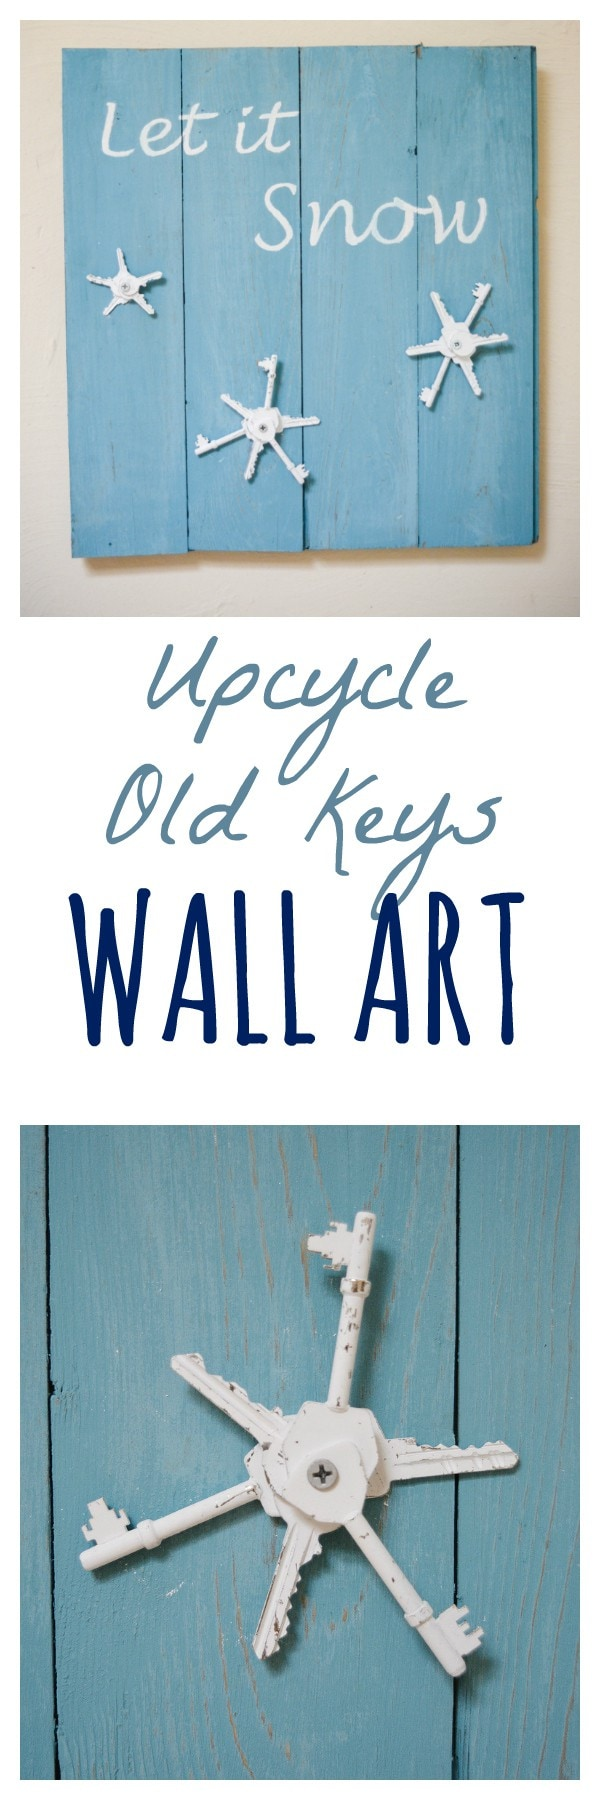 Ideas for upcycling old keys 4